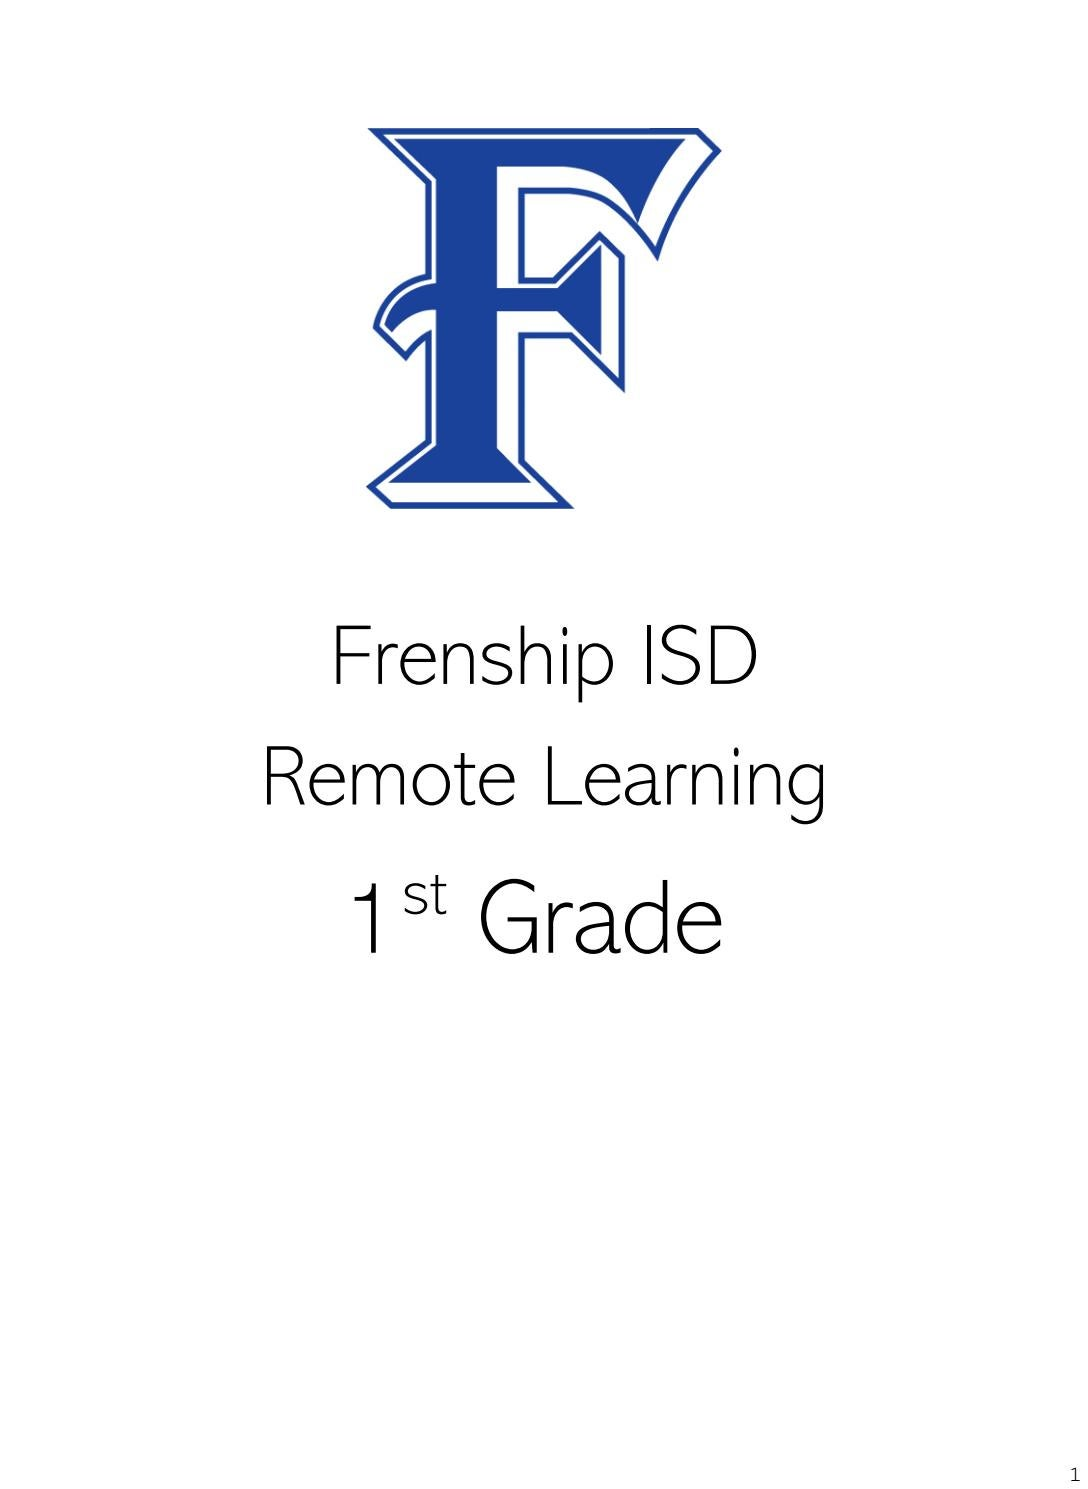 hight resolution of 1st Grade Remote Learning May 11-15 by frenshipisd - issuu